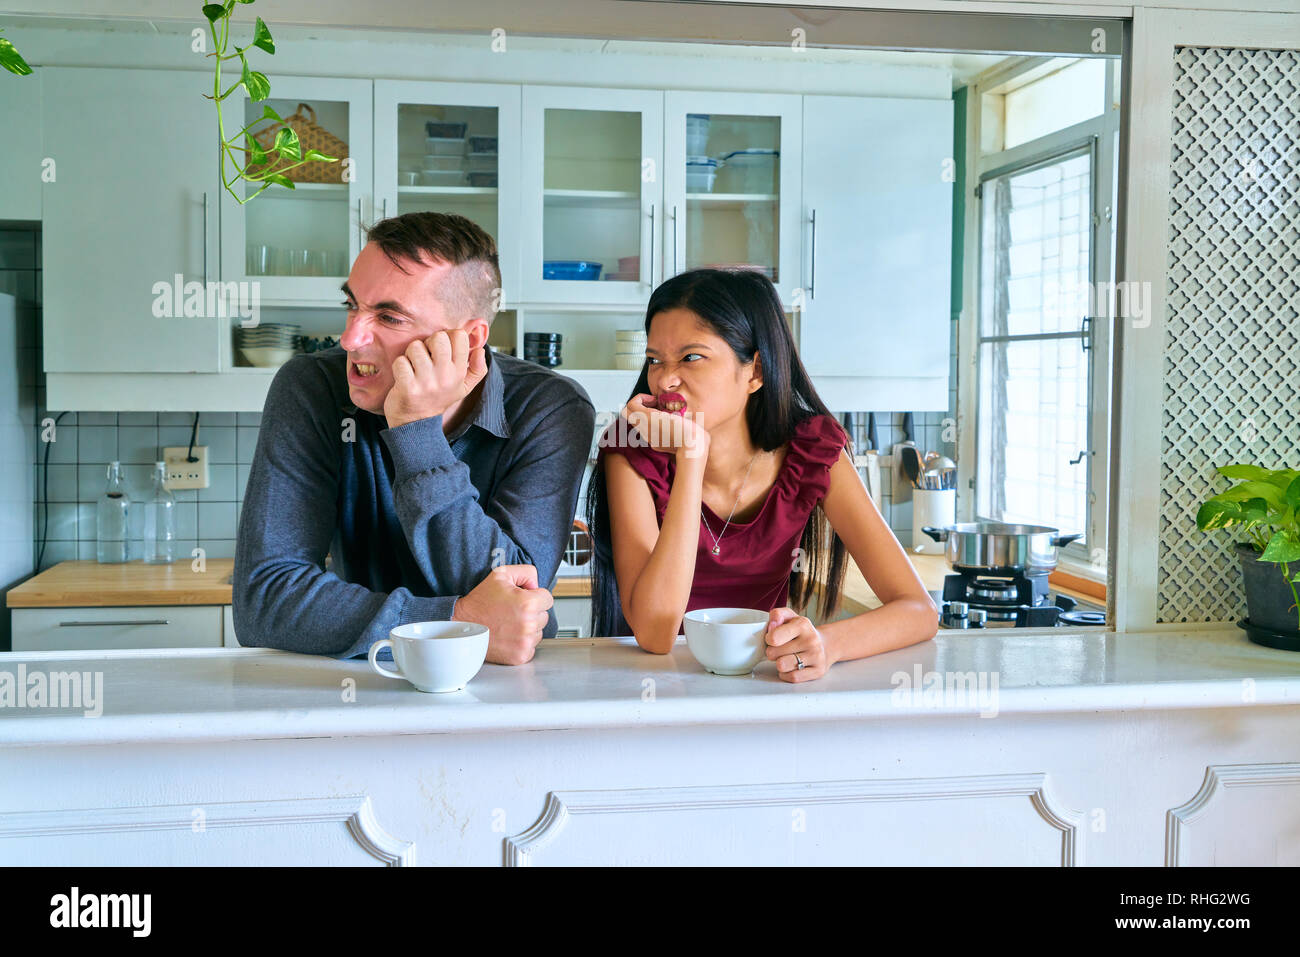 Lovely couple posing - arguing and ignoring - Stock Image